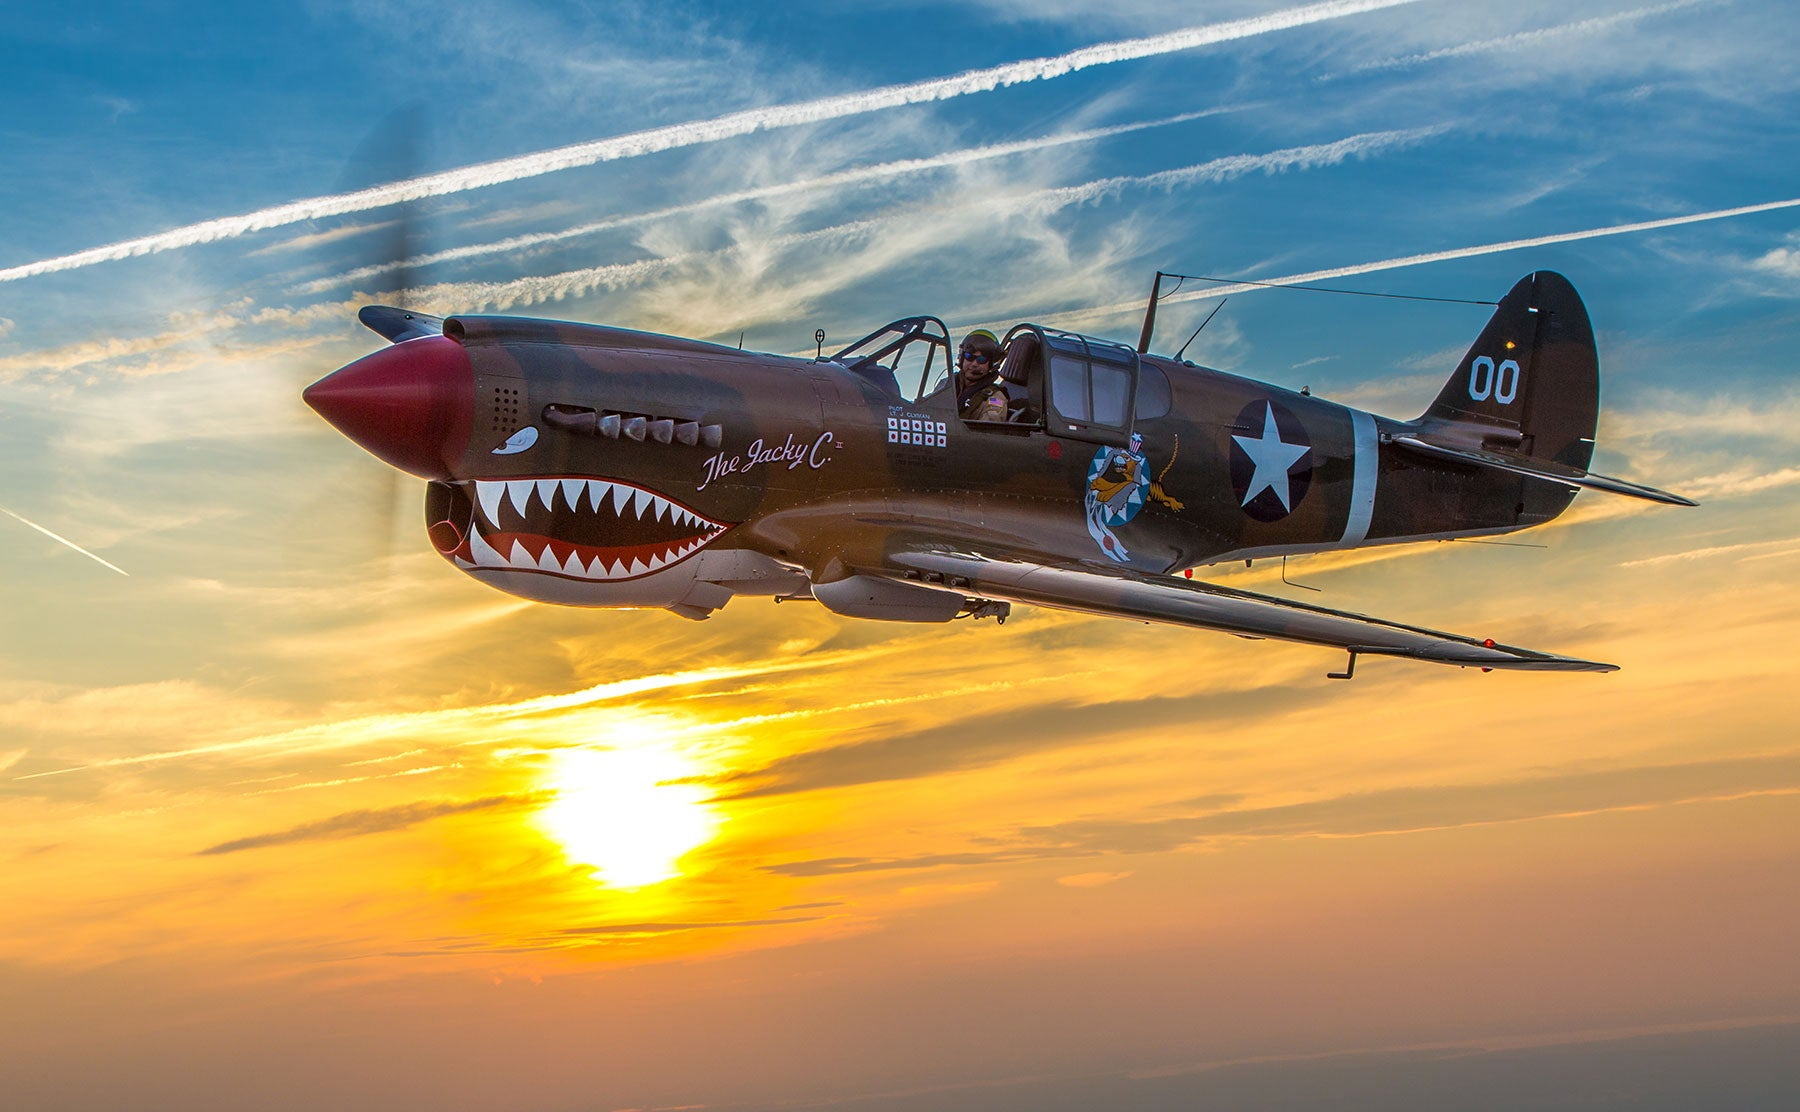 The American Airpower Museum's P-40 will be at SUN 'n FUN in Florida